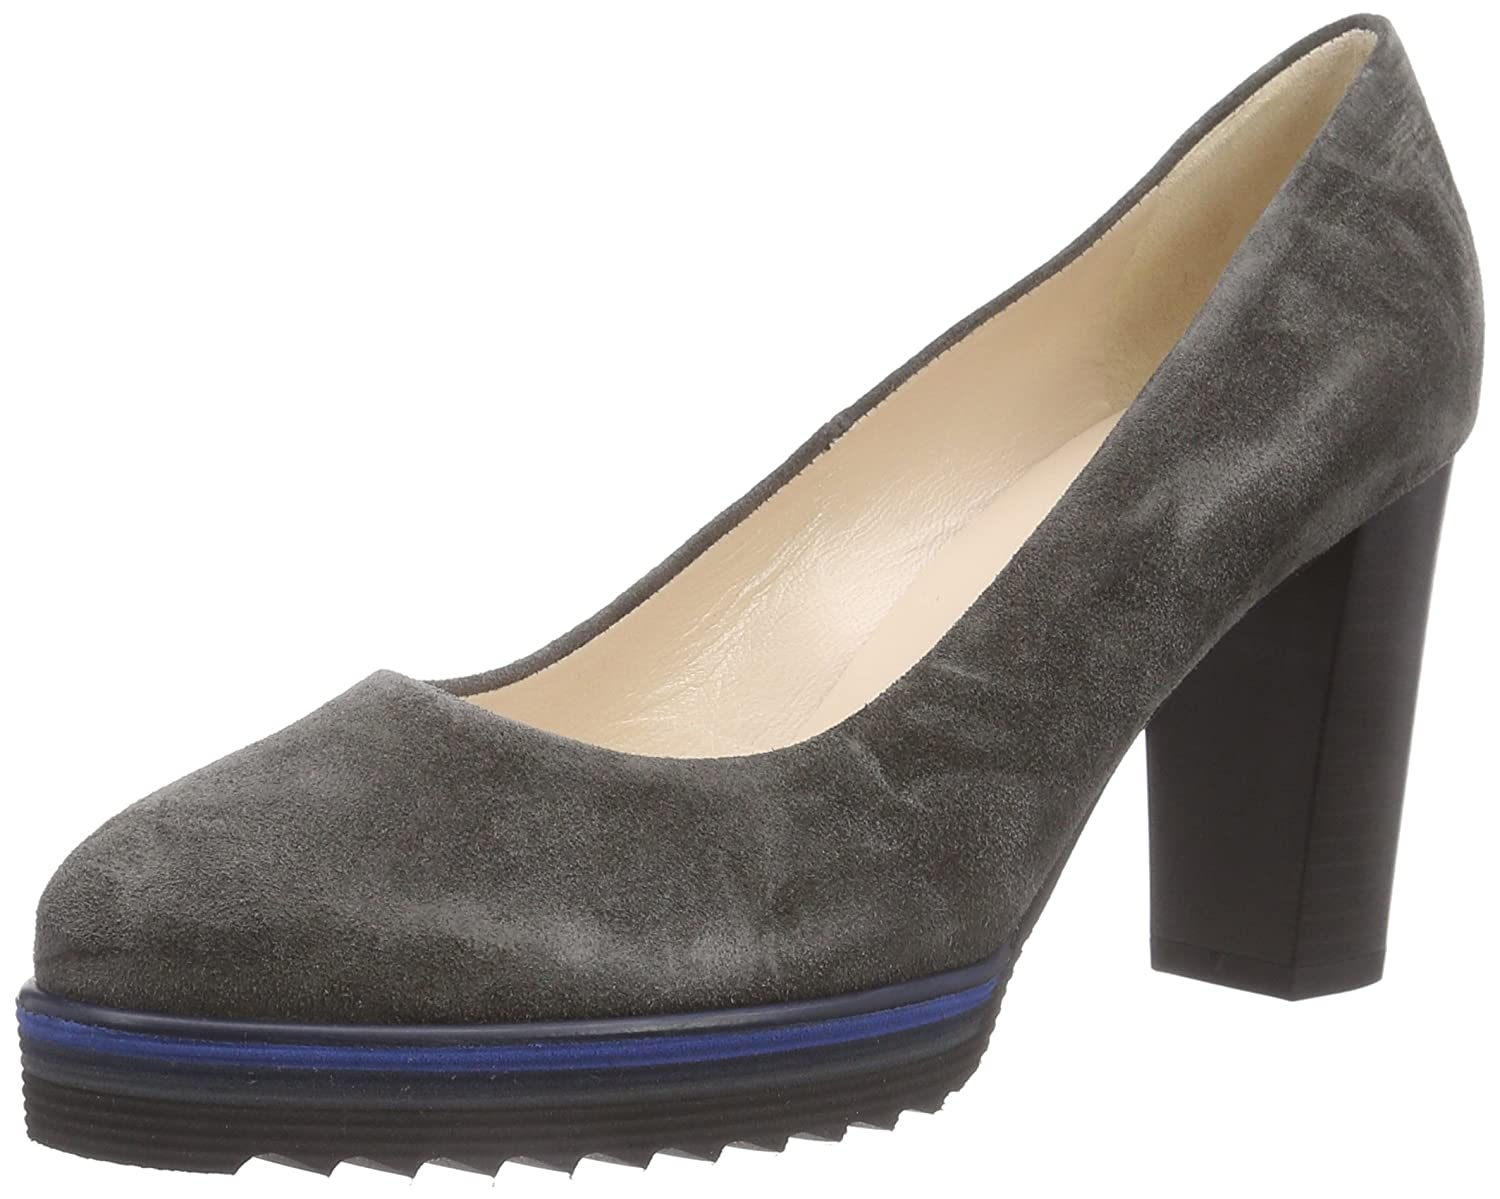 Gabor Shoes Comfort 82.171.18 Damen Pumps: : Schuhe